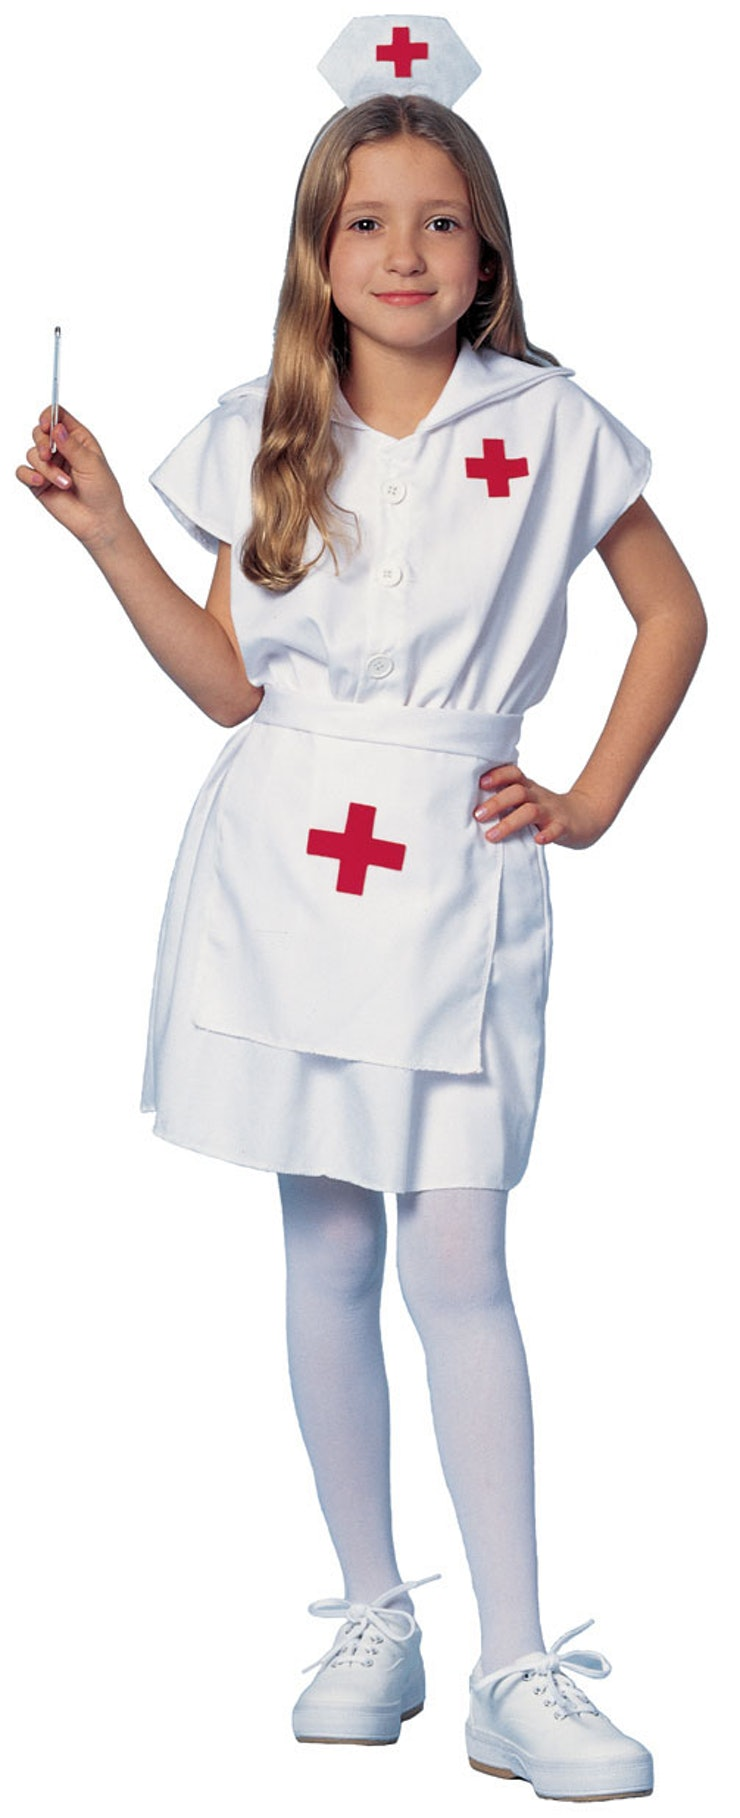 10 Truly Regrettable Kids Halloween Costumes That They Somehow End ...